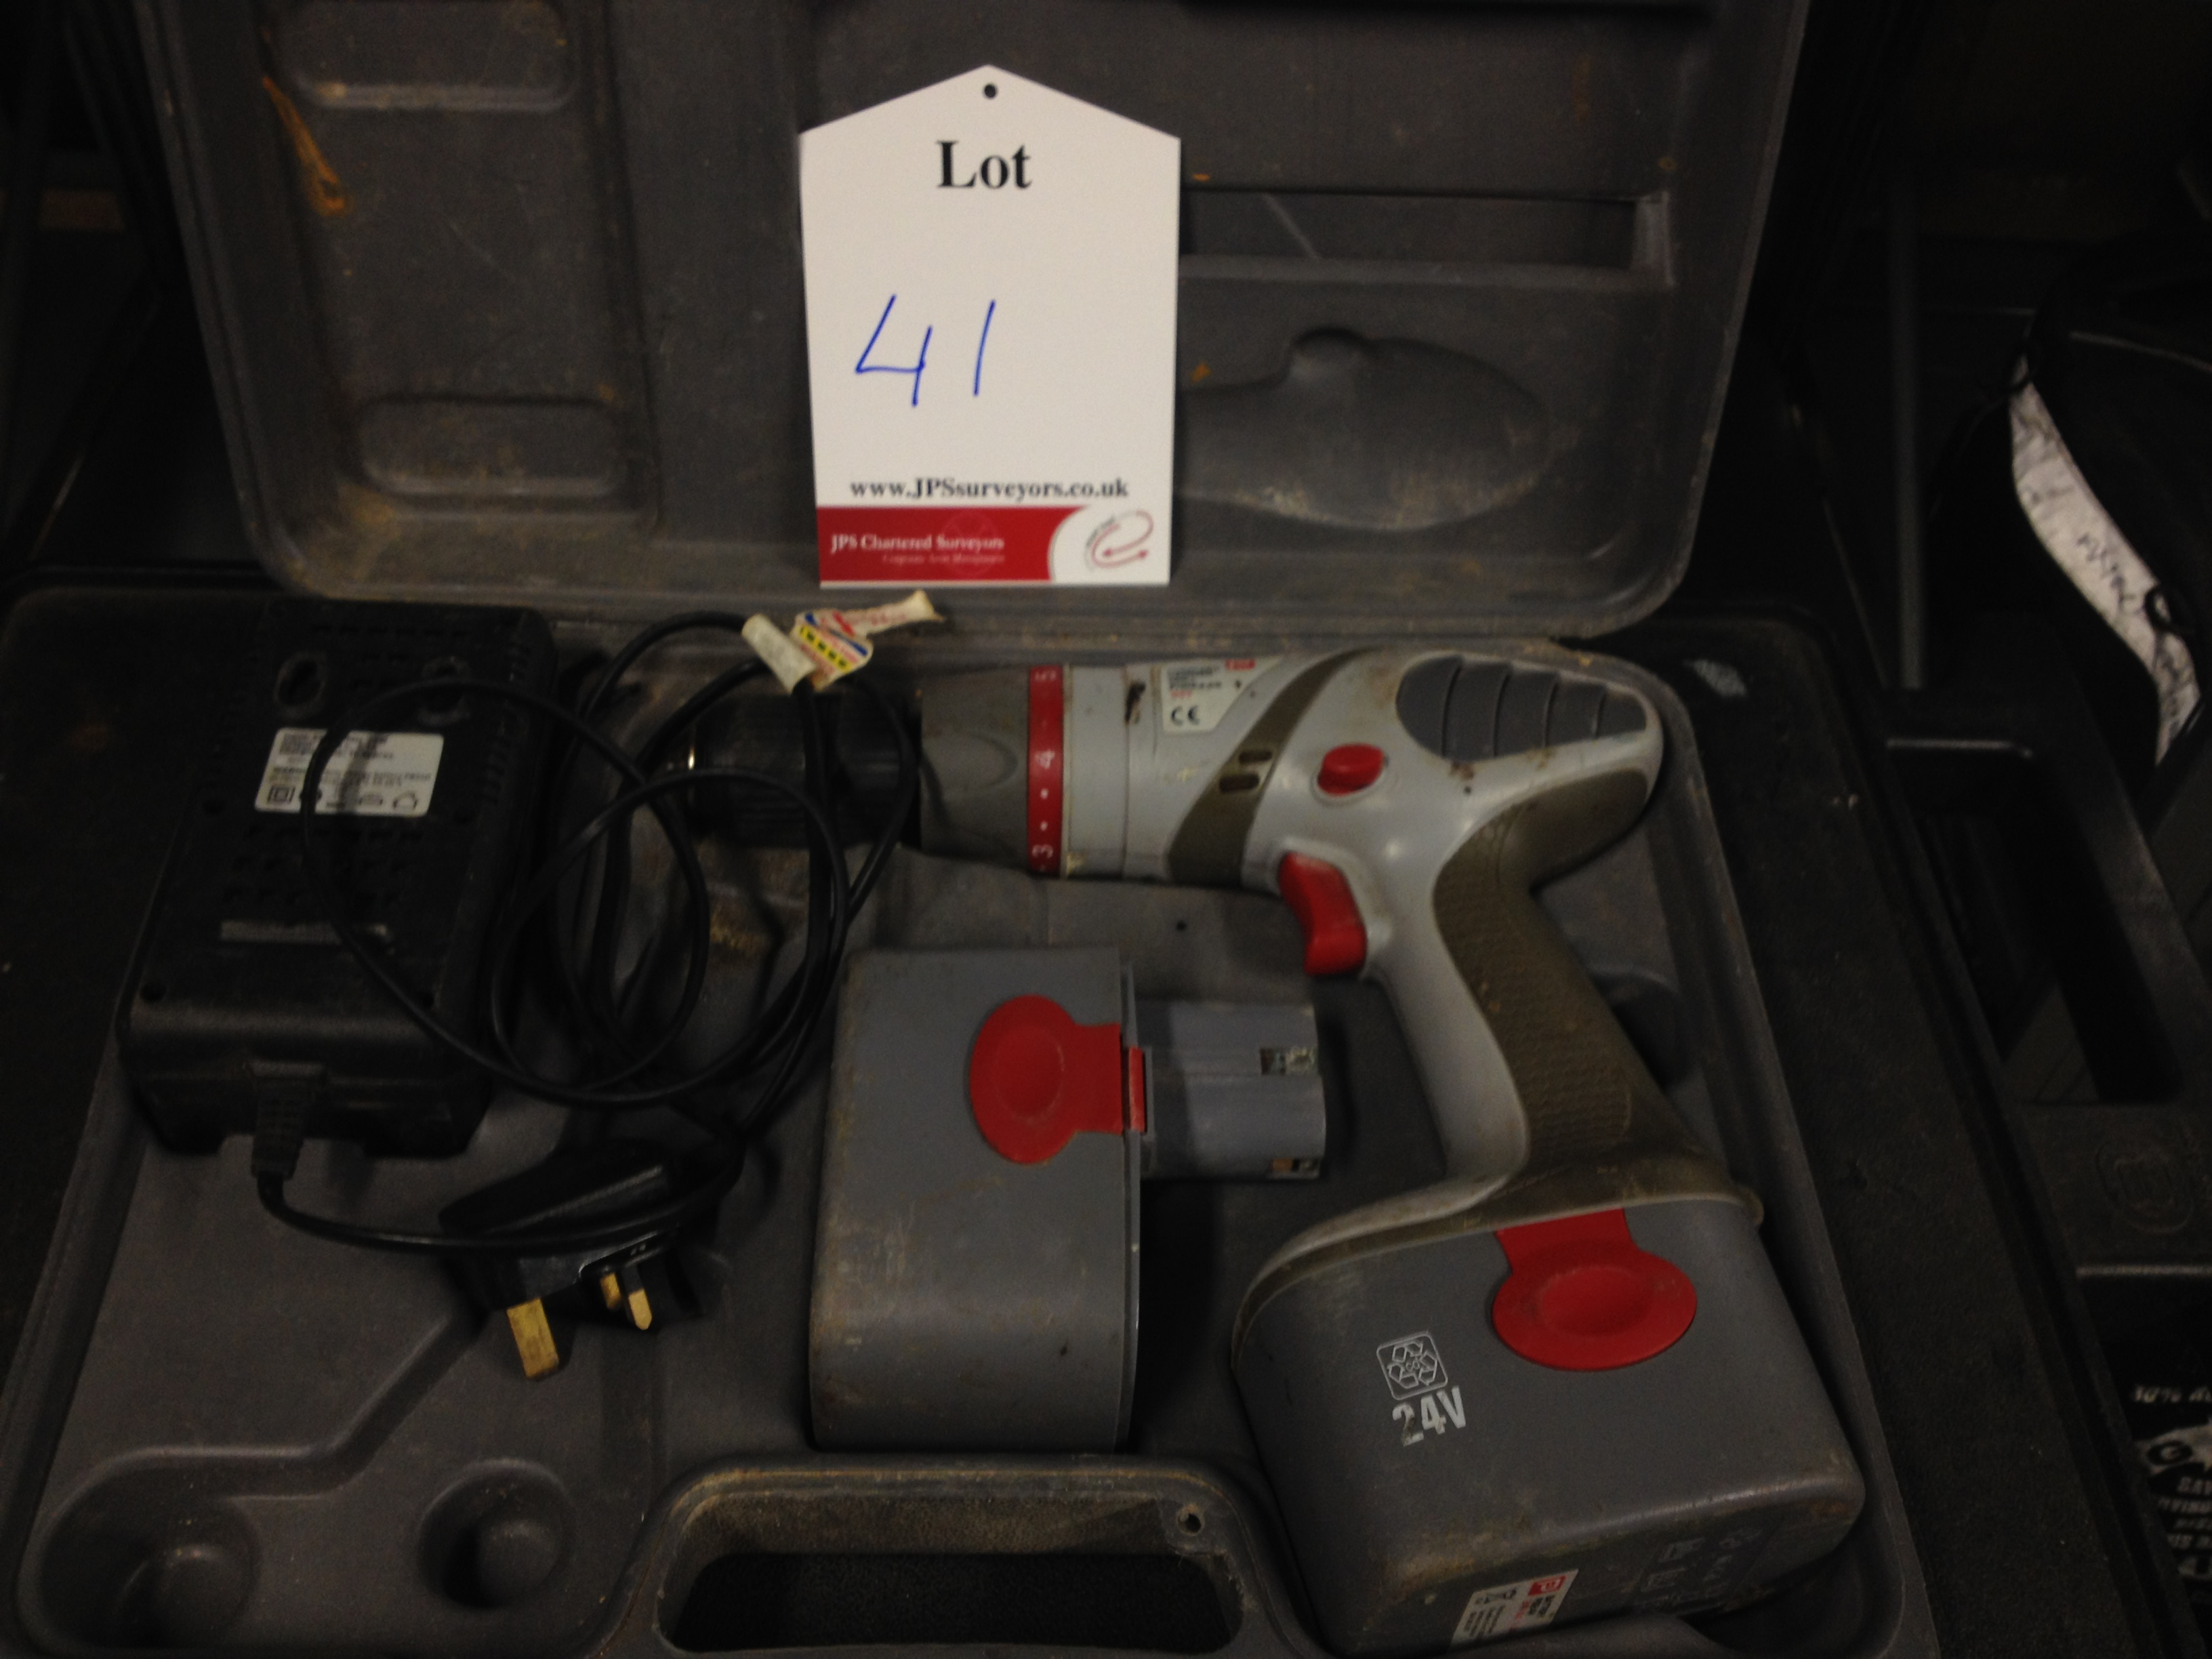 1 x Performance Power cordless Hammer Drill 500w - Image 2 of 3